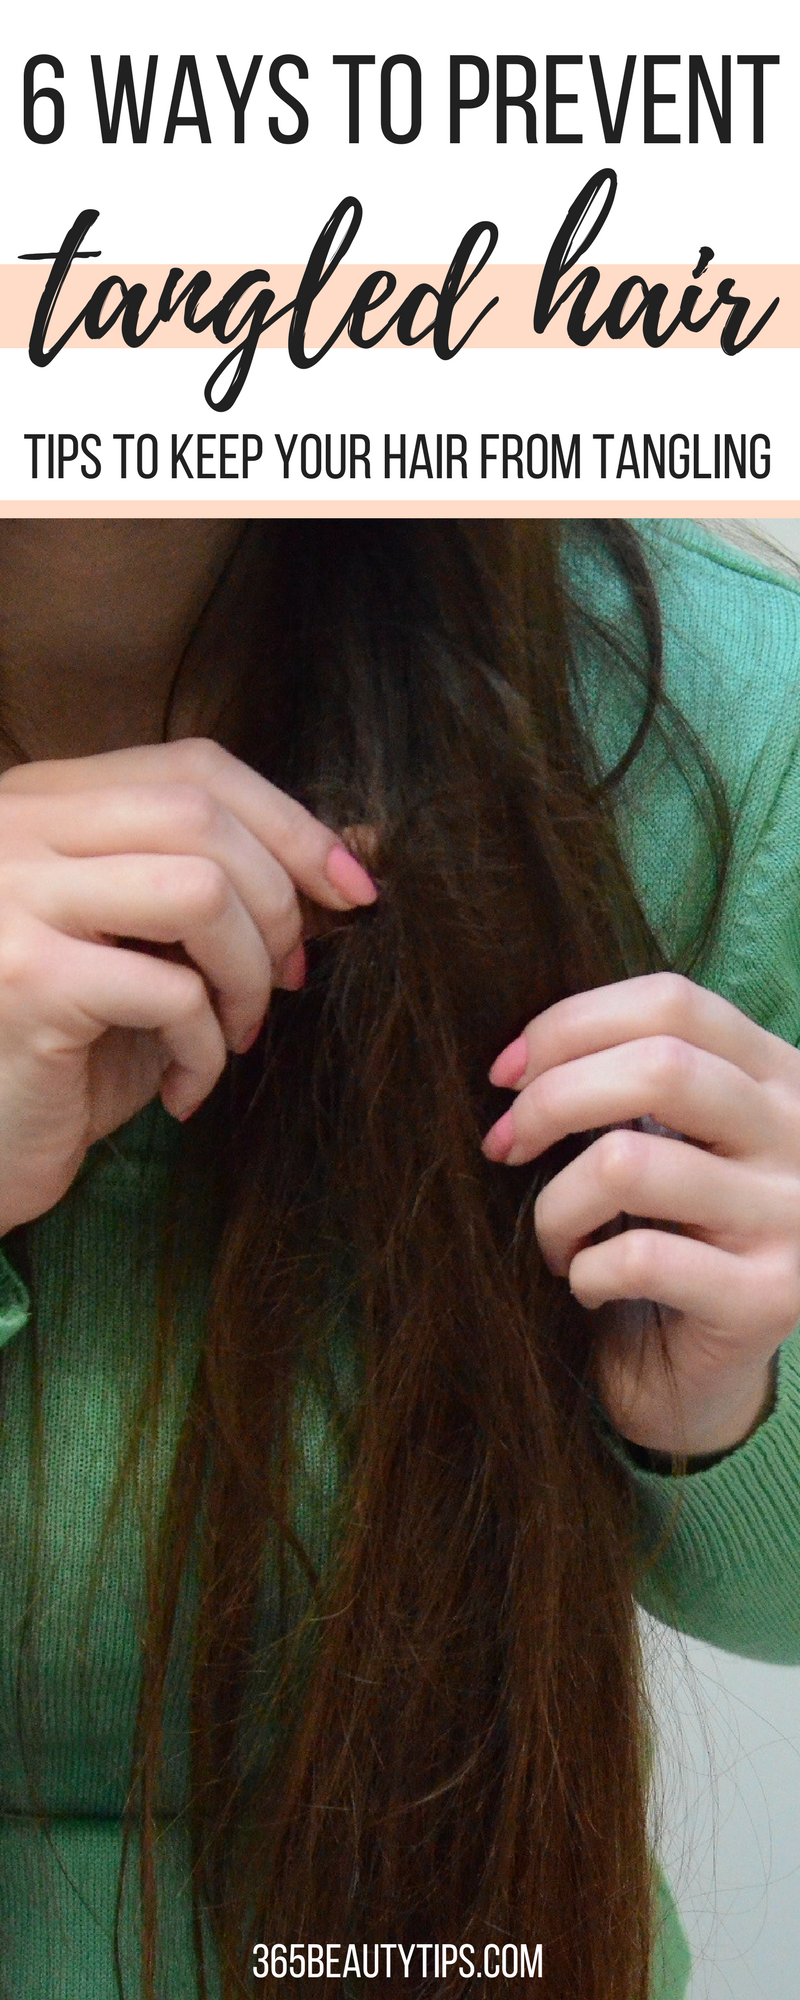 6-ways-to-prevent-tangled hair-365-beauty-tips